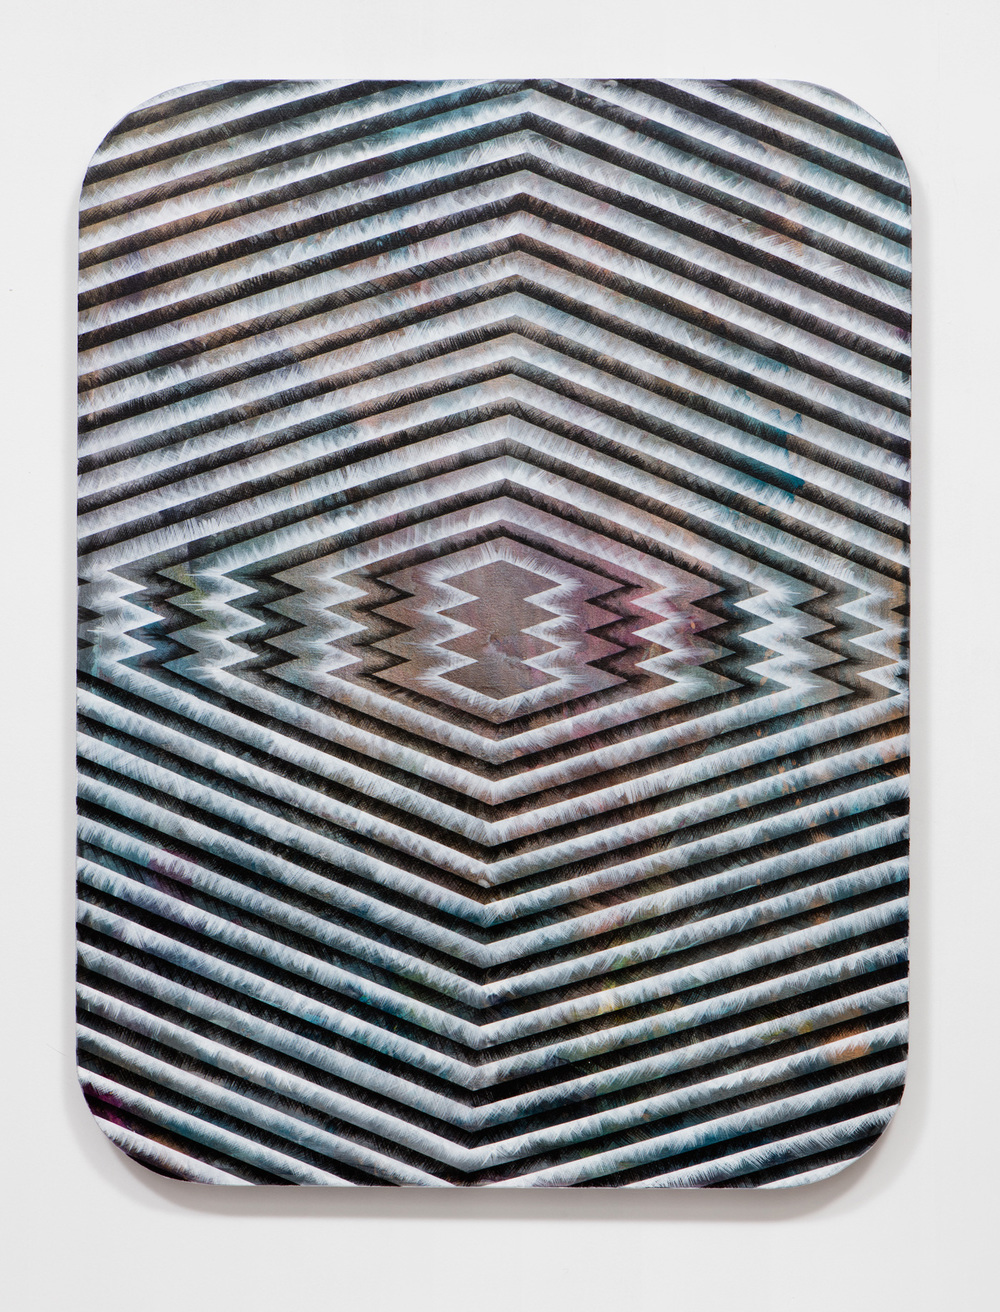 SLATE: Radial Painting No. 2 (compressed diamond stack)  , 2015 Golden acrylic on canvas stretched over custom panel 48 x 36 inches